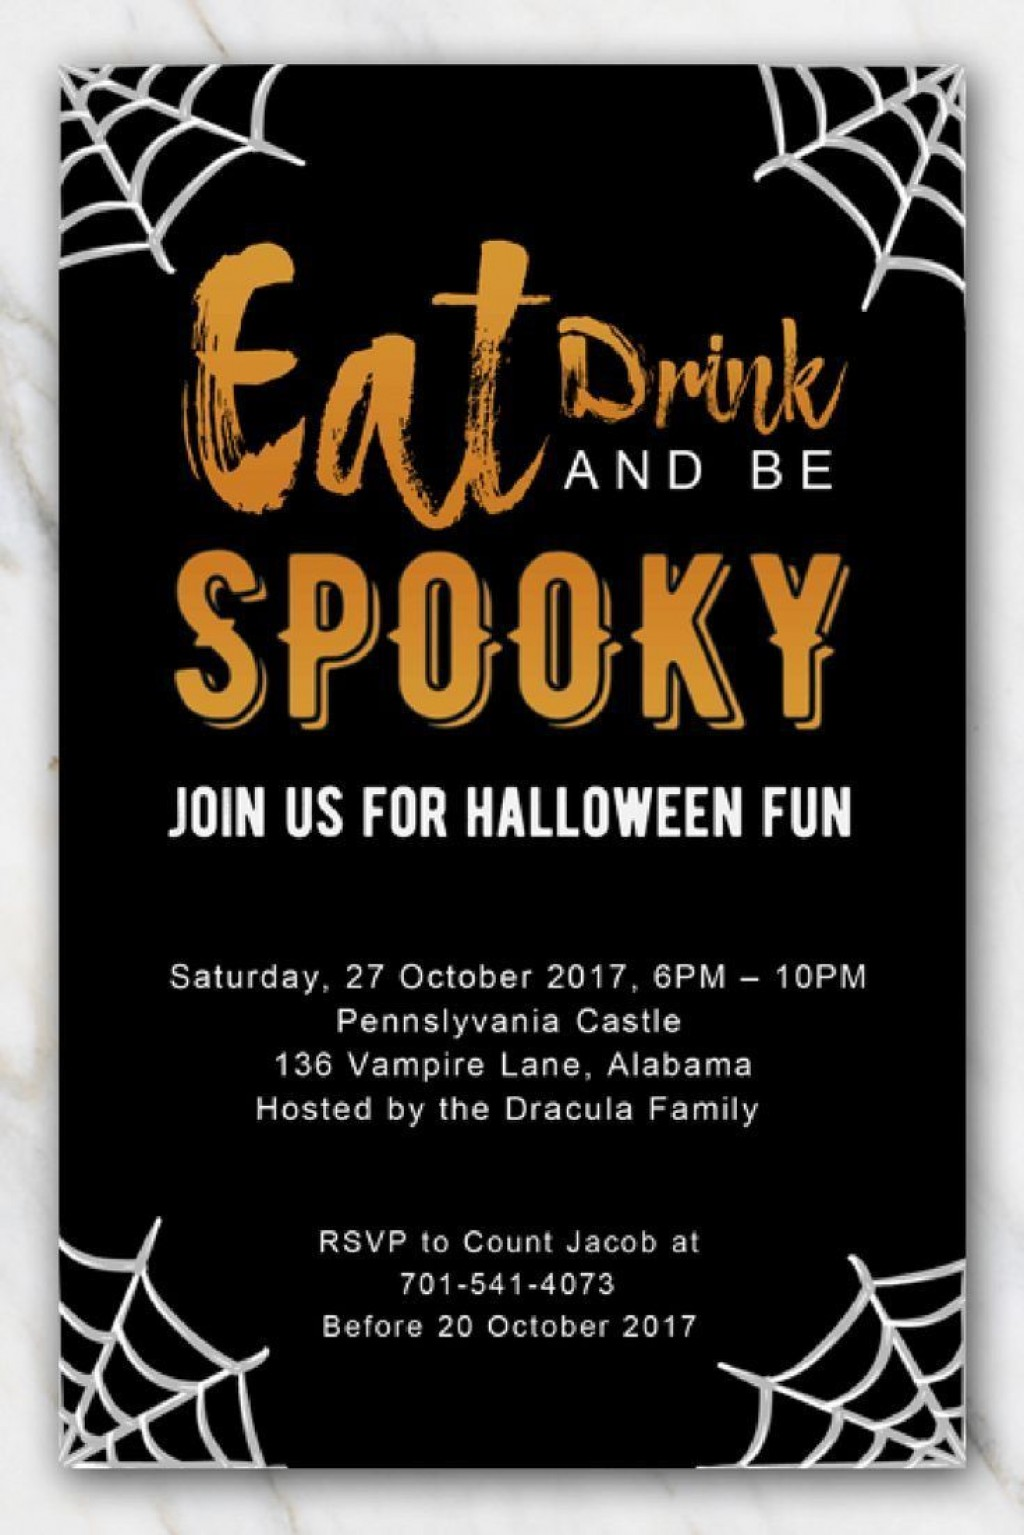 003 Awful Halloween Party Invite Template Idea  Templates - Free Printable Spooky Invitation BirthdayLarge